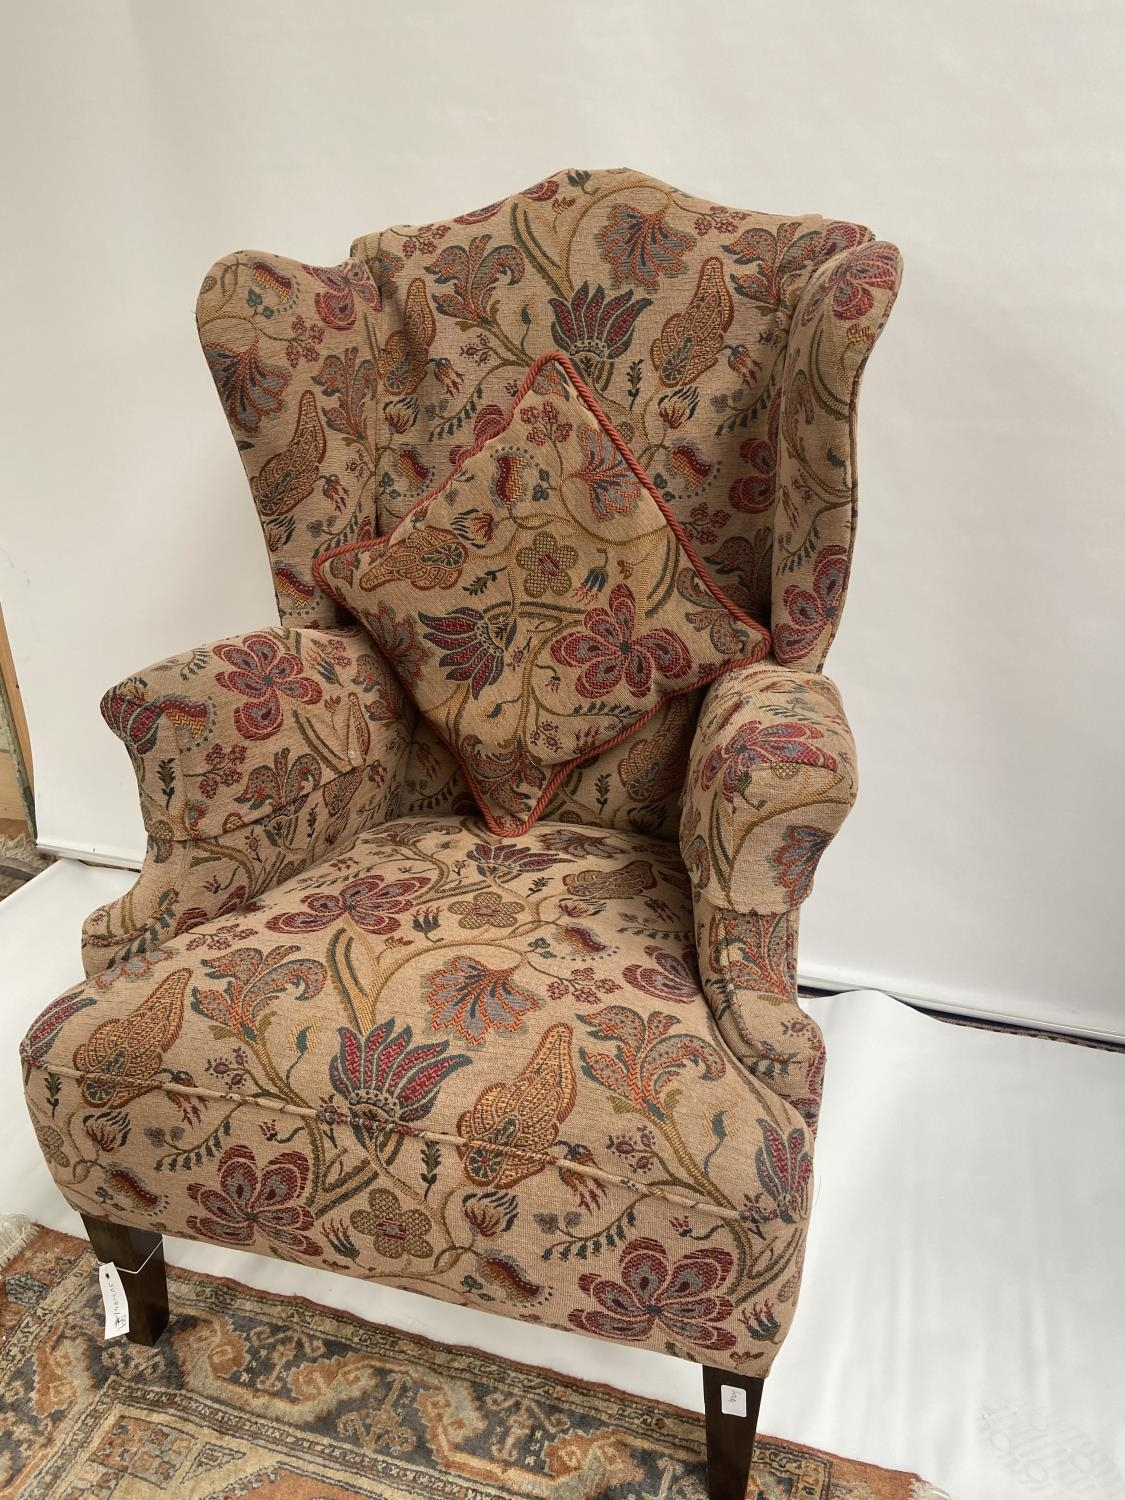 Antique gull wing arm chair. [back 114cm] [seat area 50cm] - Image 3 of 5